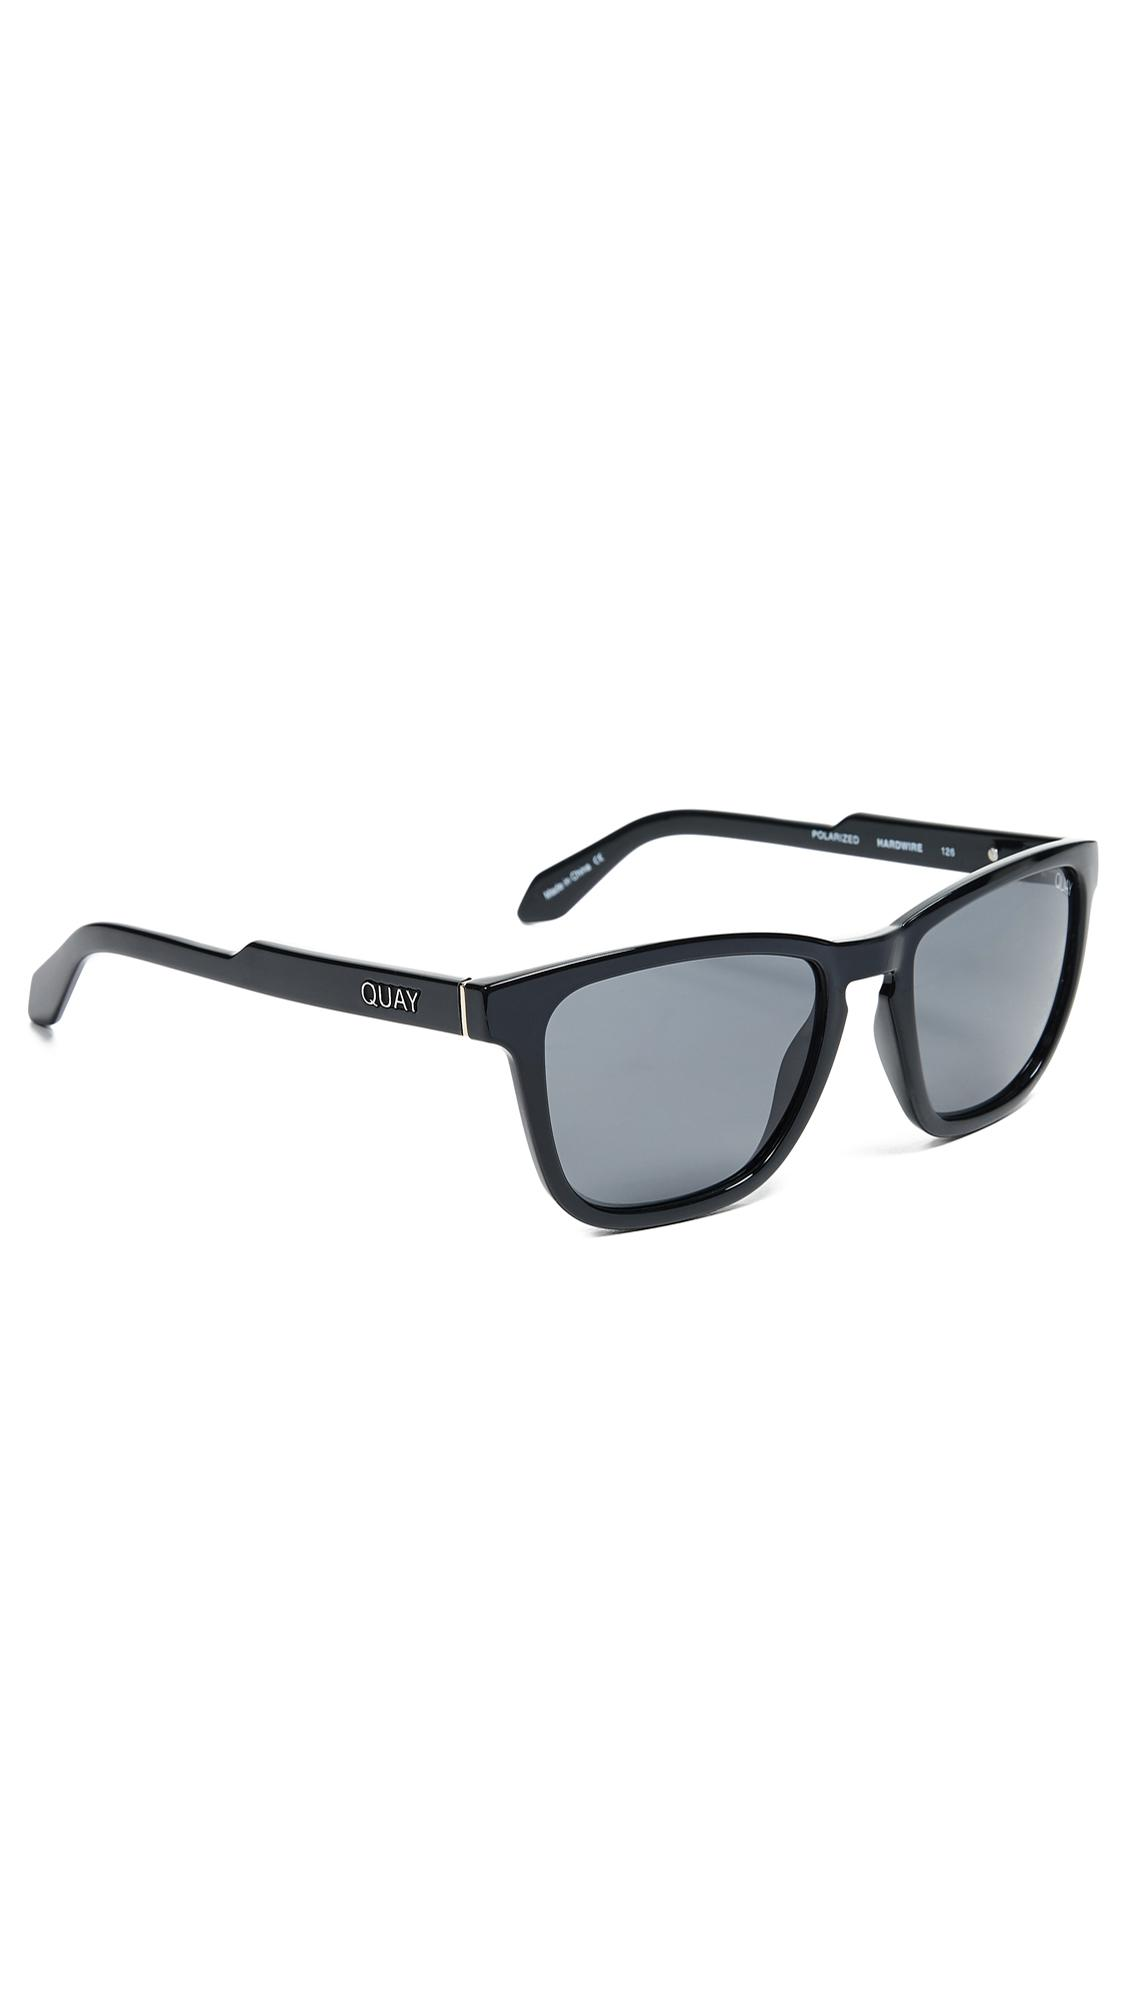 3af3071ebf Quay Hardwire Sunglasses in Black for Men - Lyst